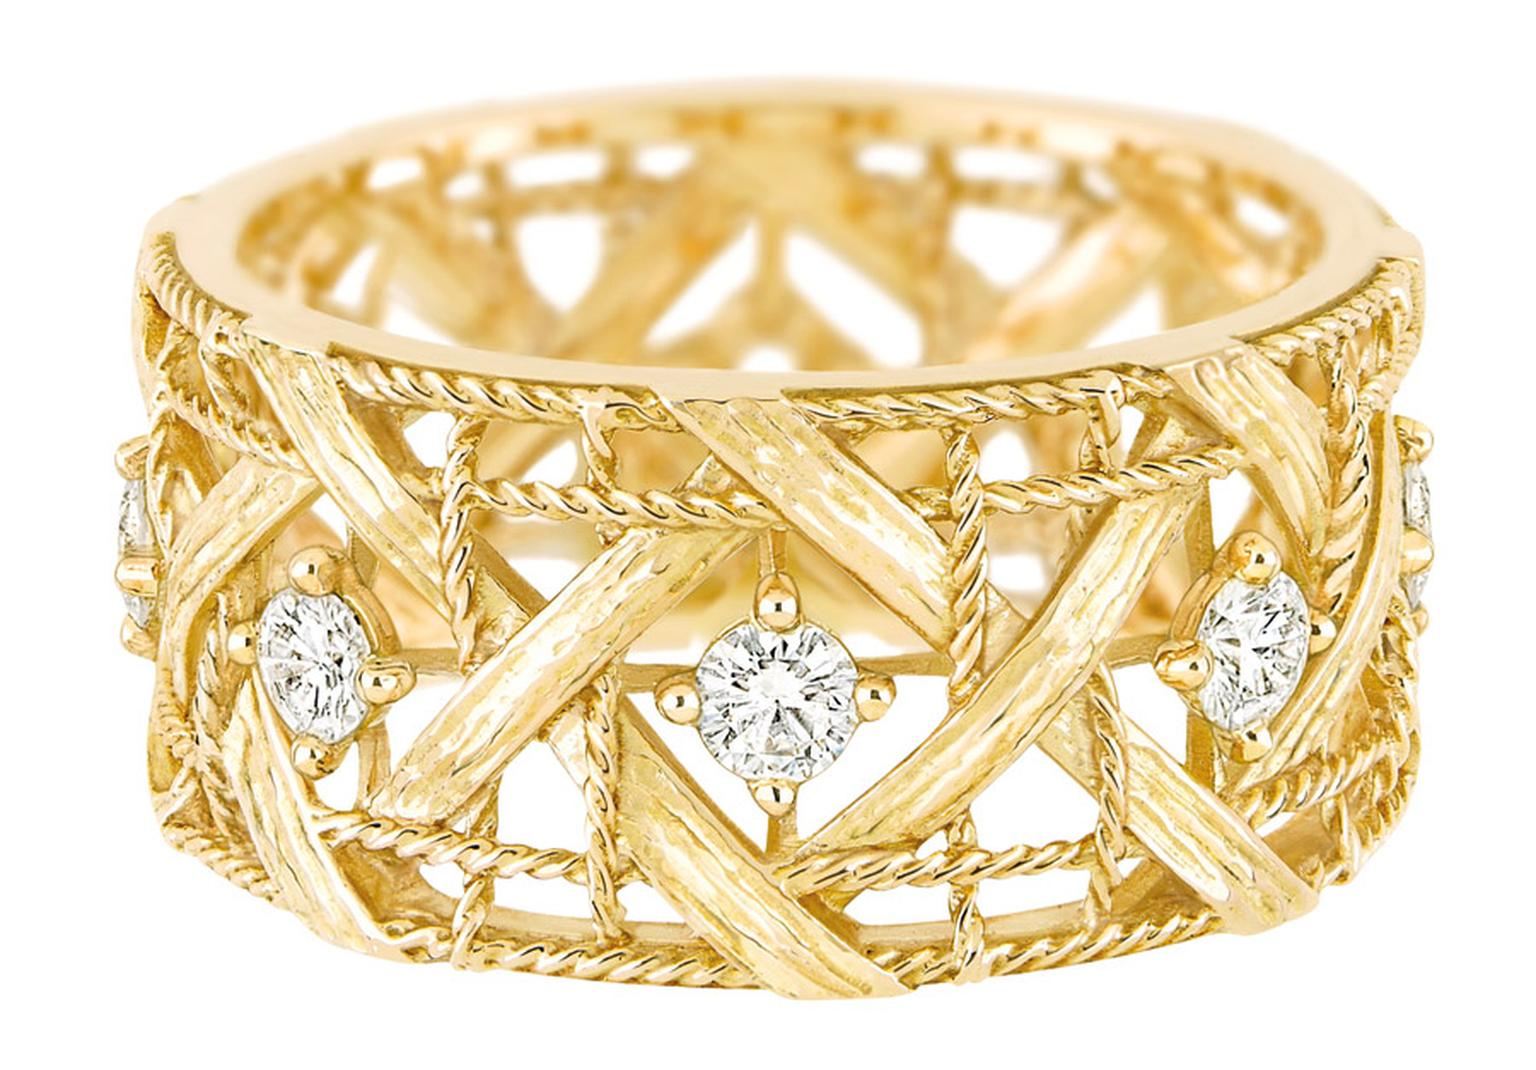 My-Dior-Ring-Yellow-gold-and-diamonds.jpg